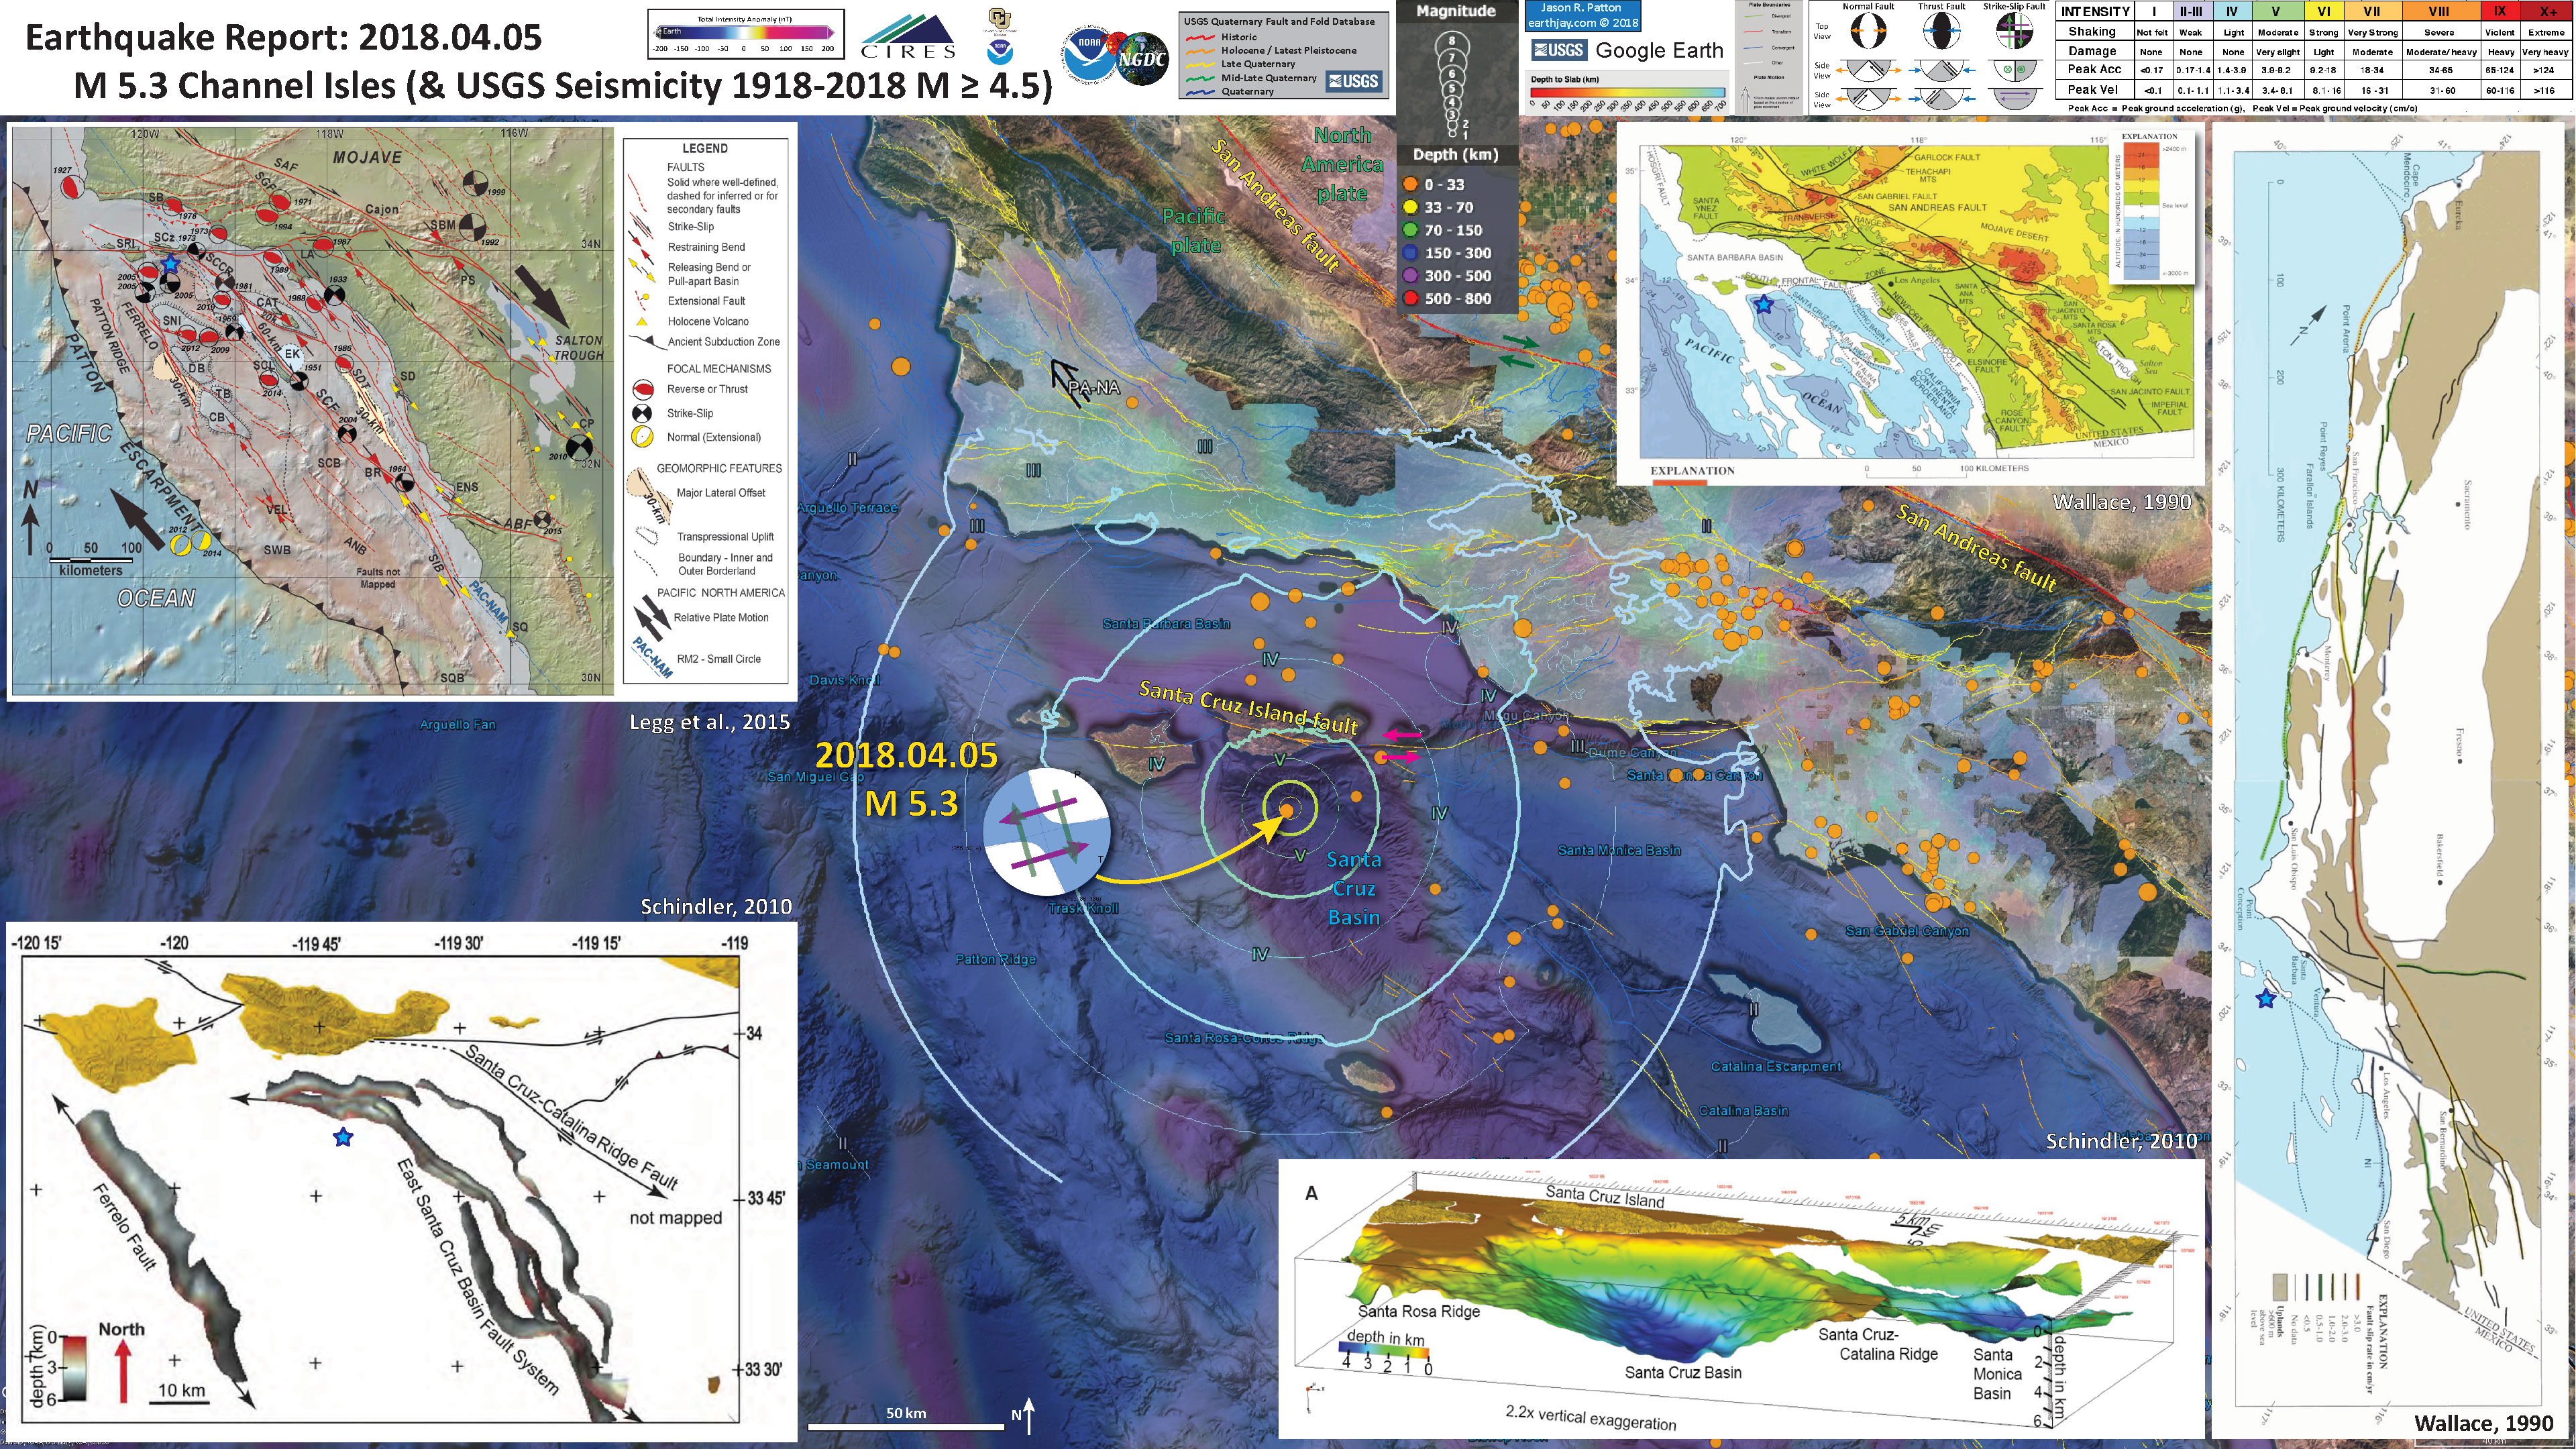 Usgs Earthquake Map San Francisco.Earthquake Report Channel Islands Jay Patton Online